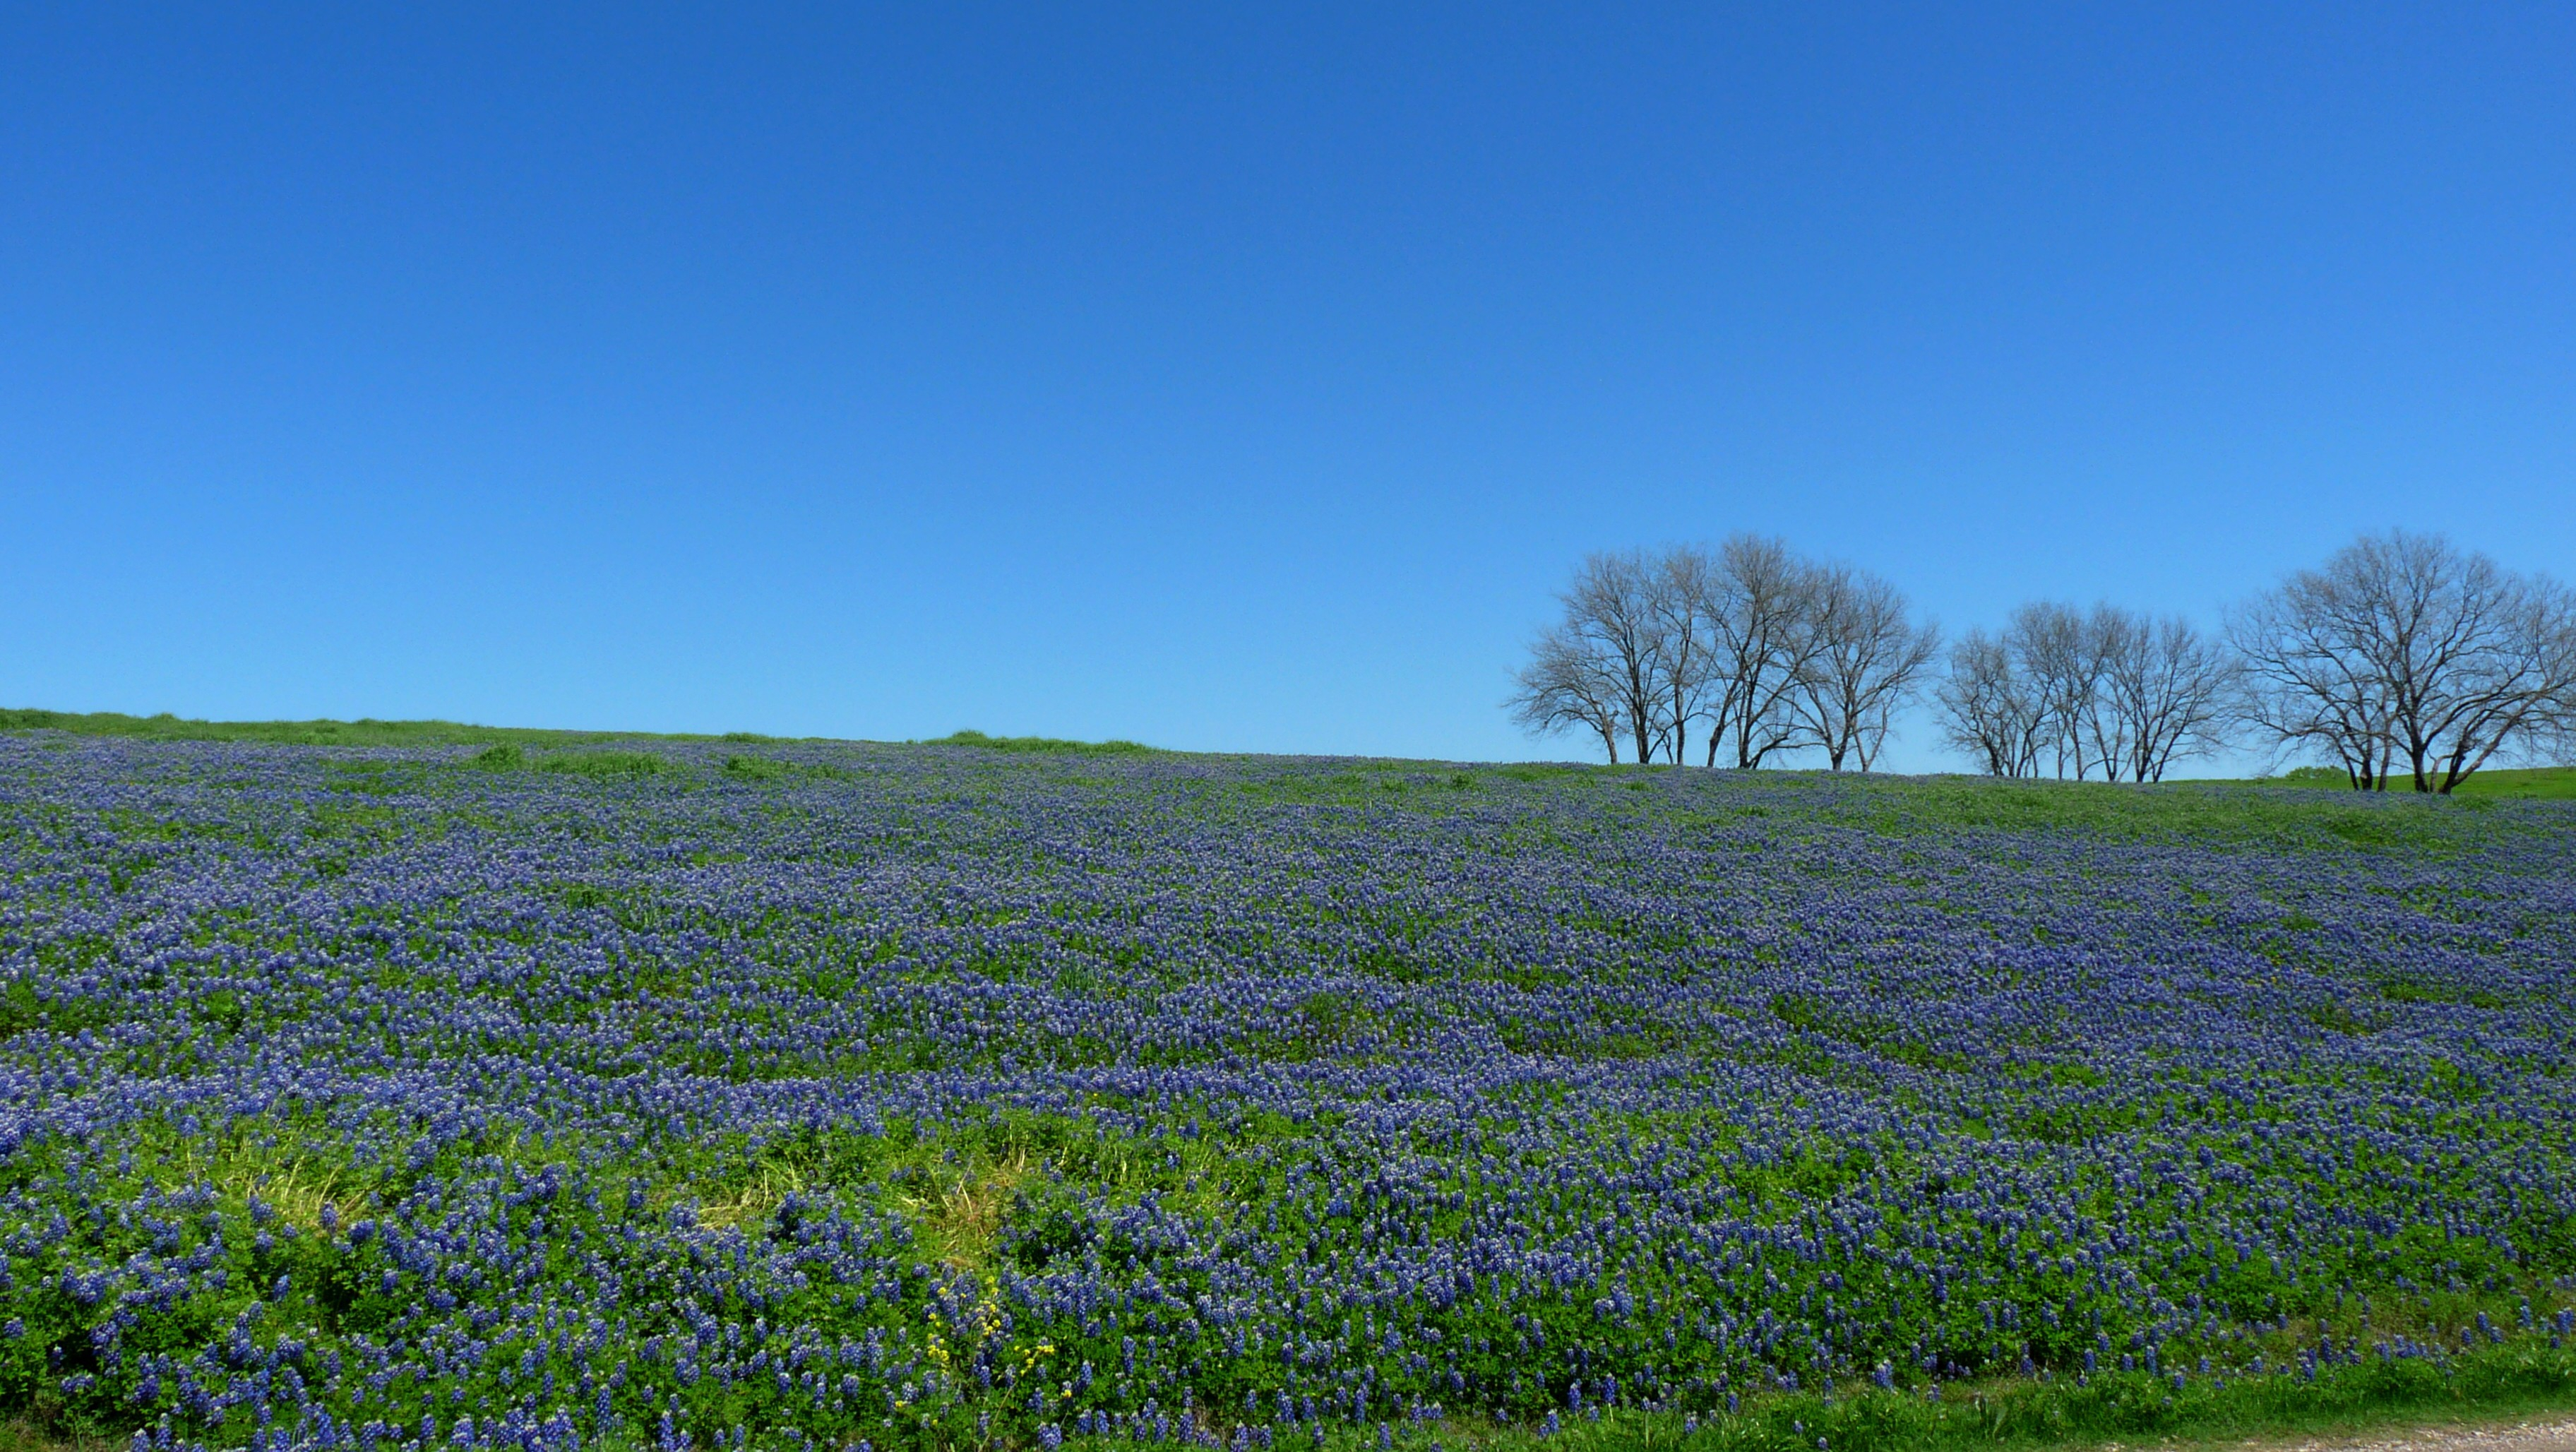 Bluebonnet High Quality Wallpapers